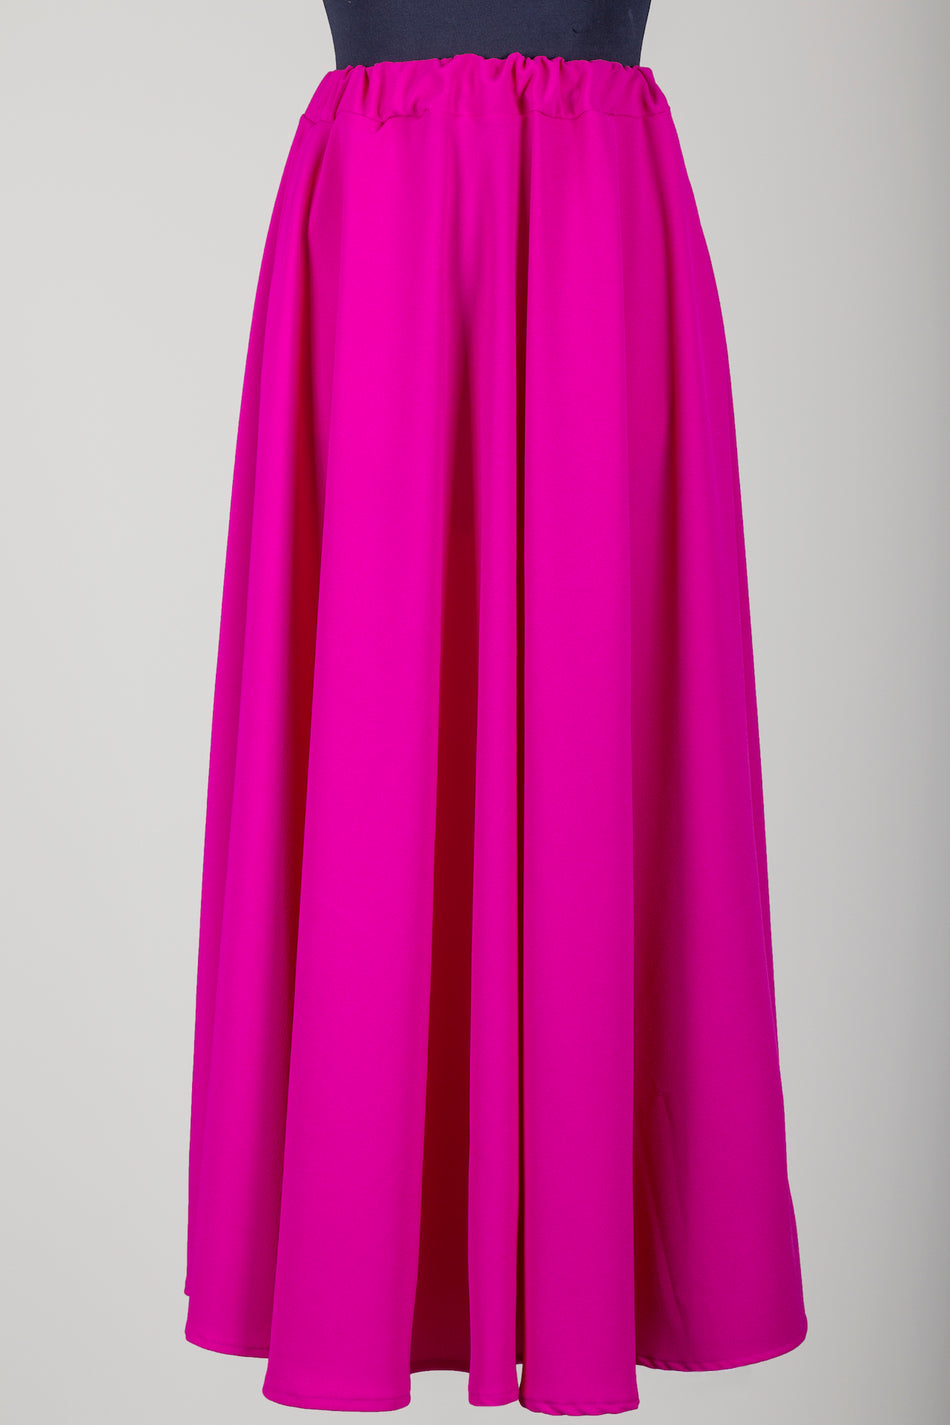 Skirt Corolla in pink silk